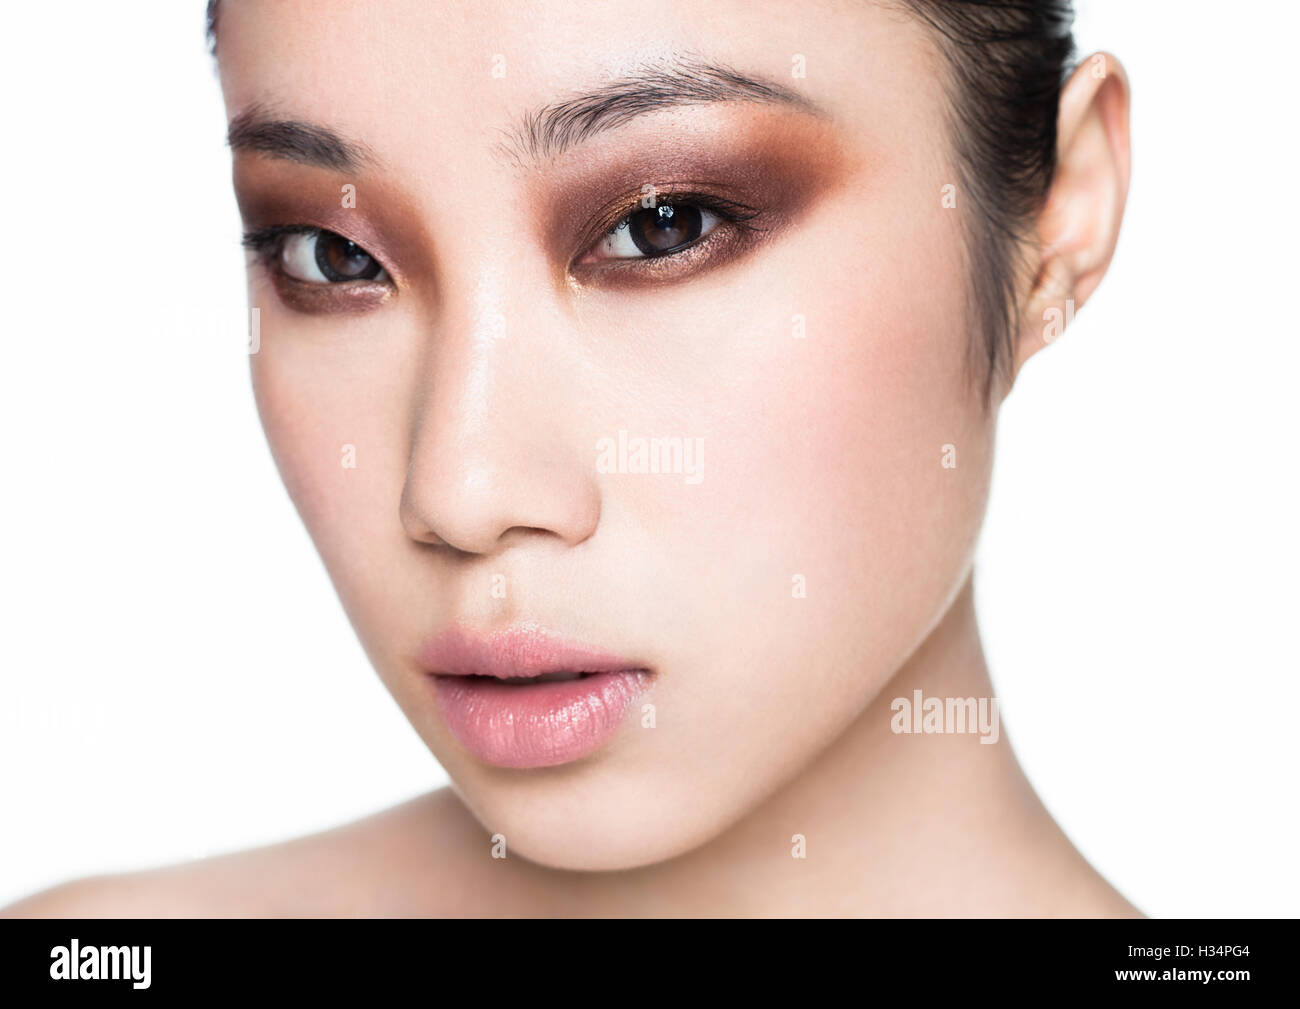 Cosmetics for asian women with